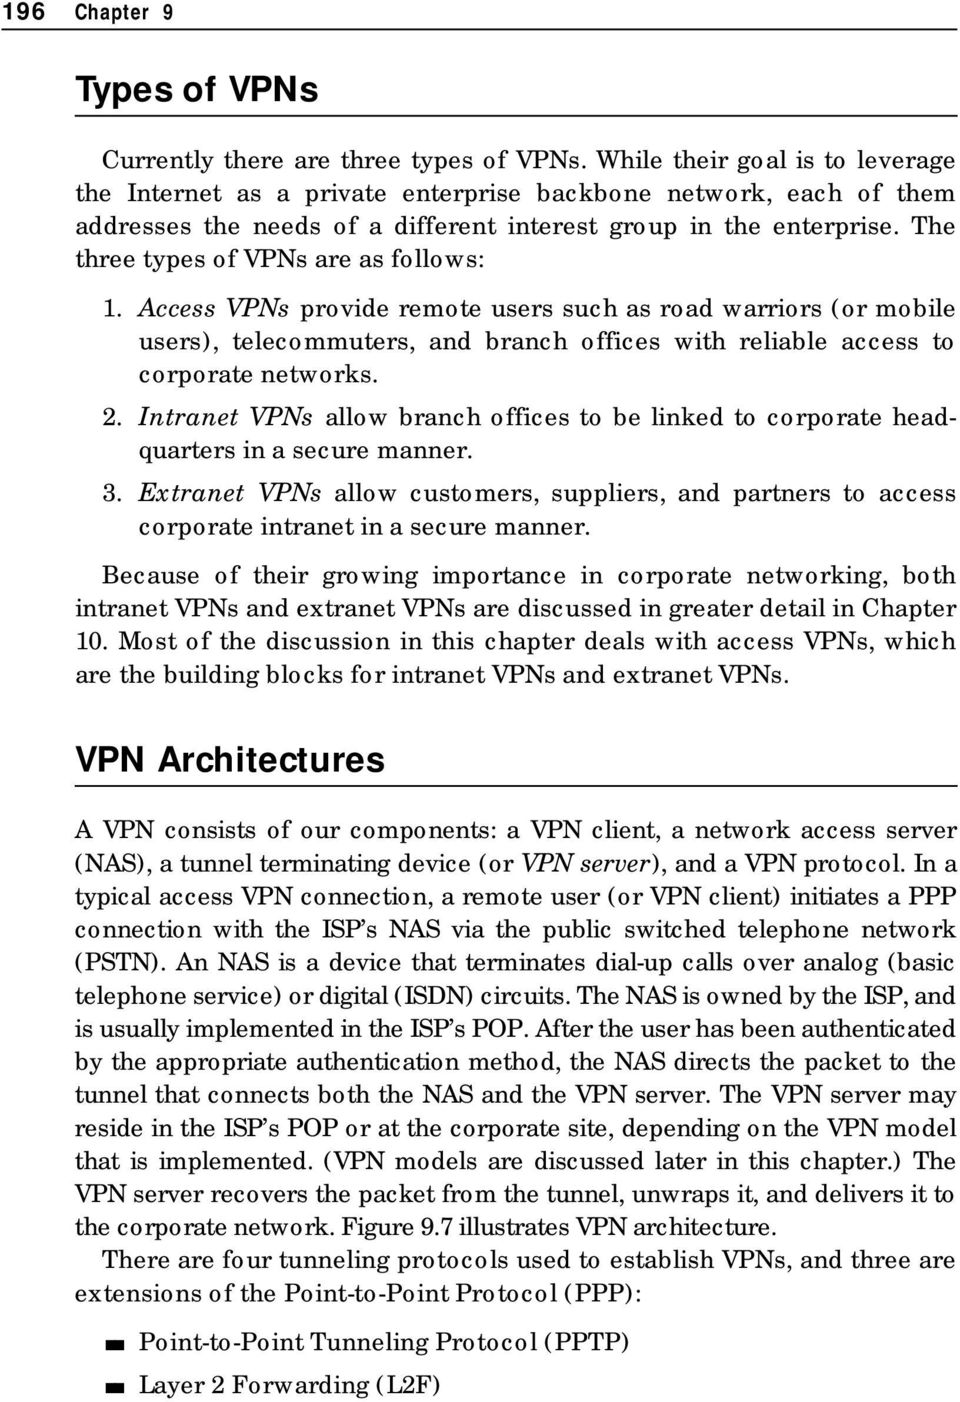 The three types of VPNs are as follows: 1. Access VPNs provide remote users such as road warriors (or mobile users), telecommuters, and branch offices with reliable access to corporate networks. 2.